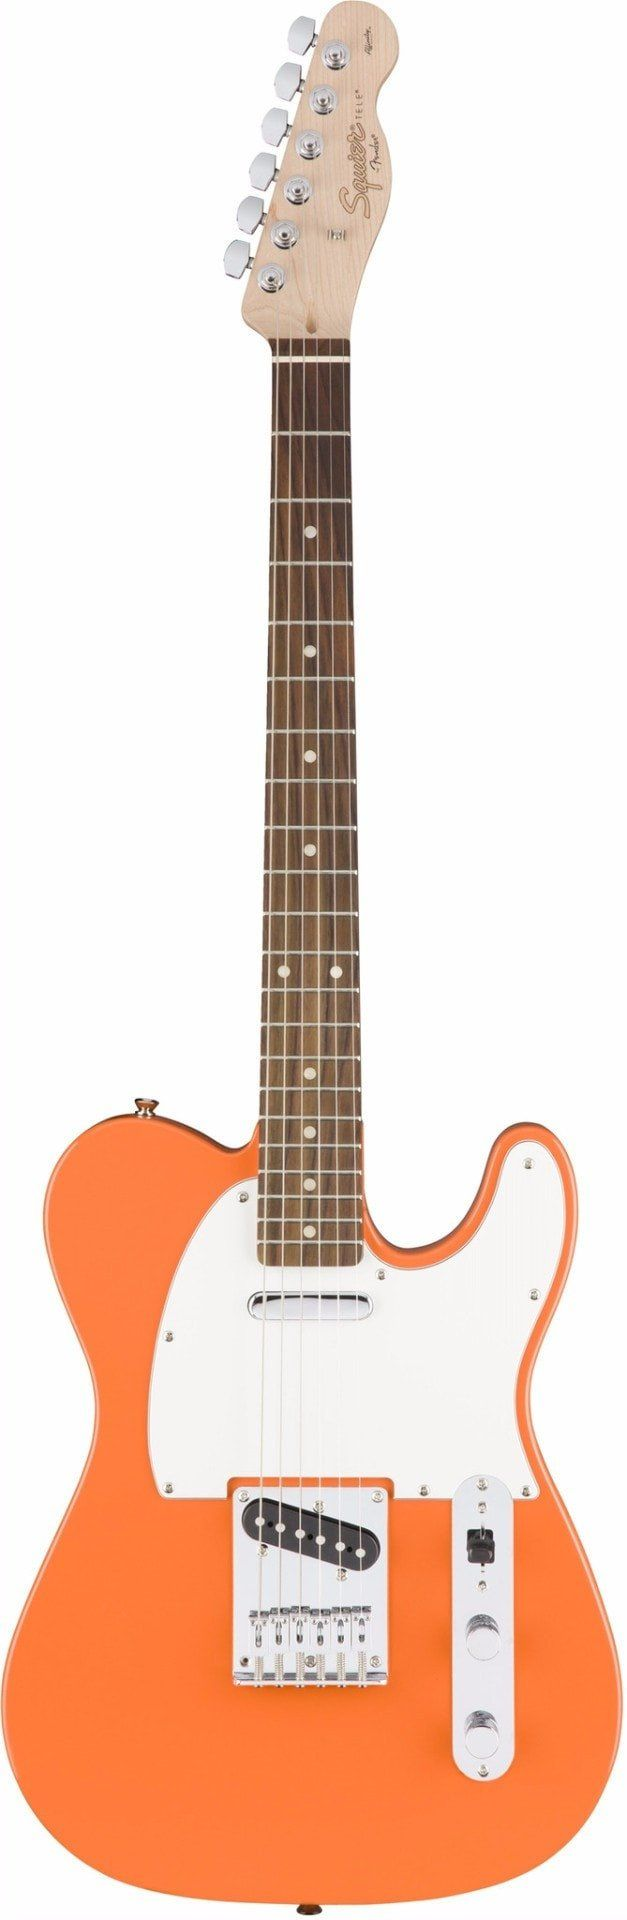 a5c6ae423ce1618731e09317b9017974 the 25 best telecaster body ideas on pinterest fender squier squier affinity squier affinity telecaster wiring diagram  [ 627 x 1920 Pixel ]